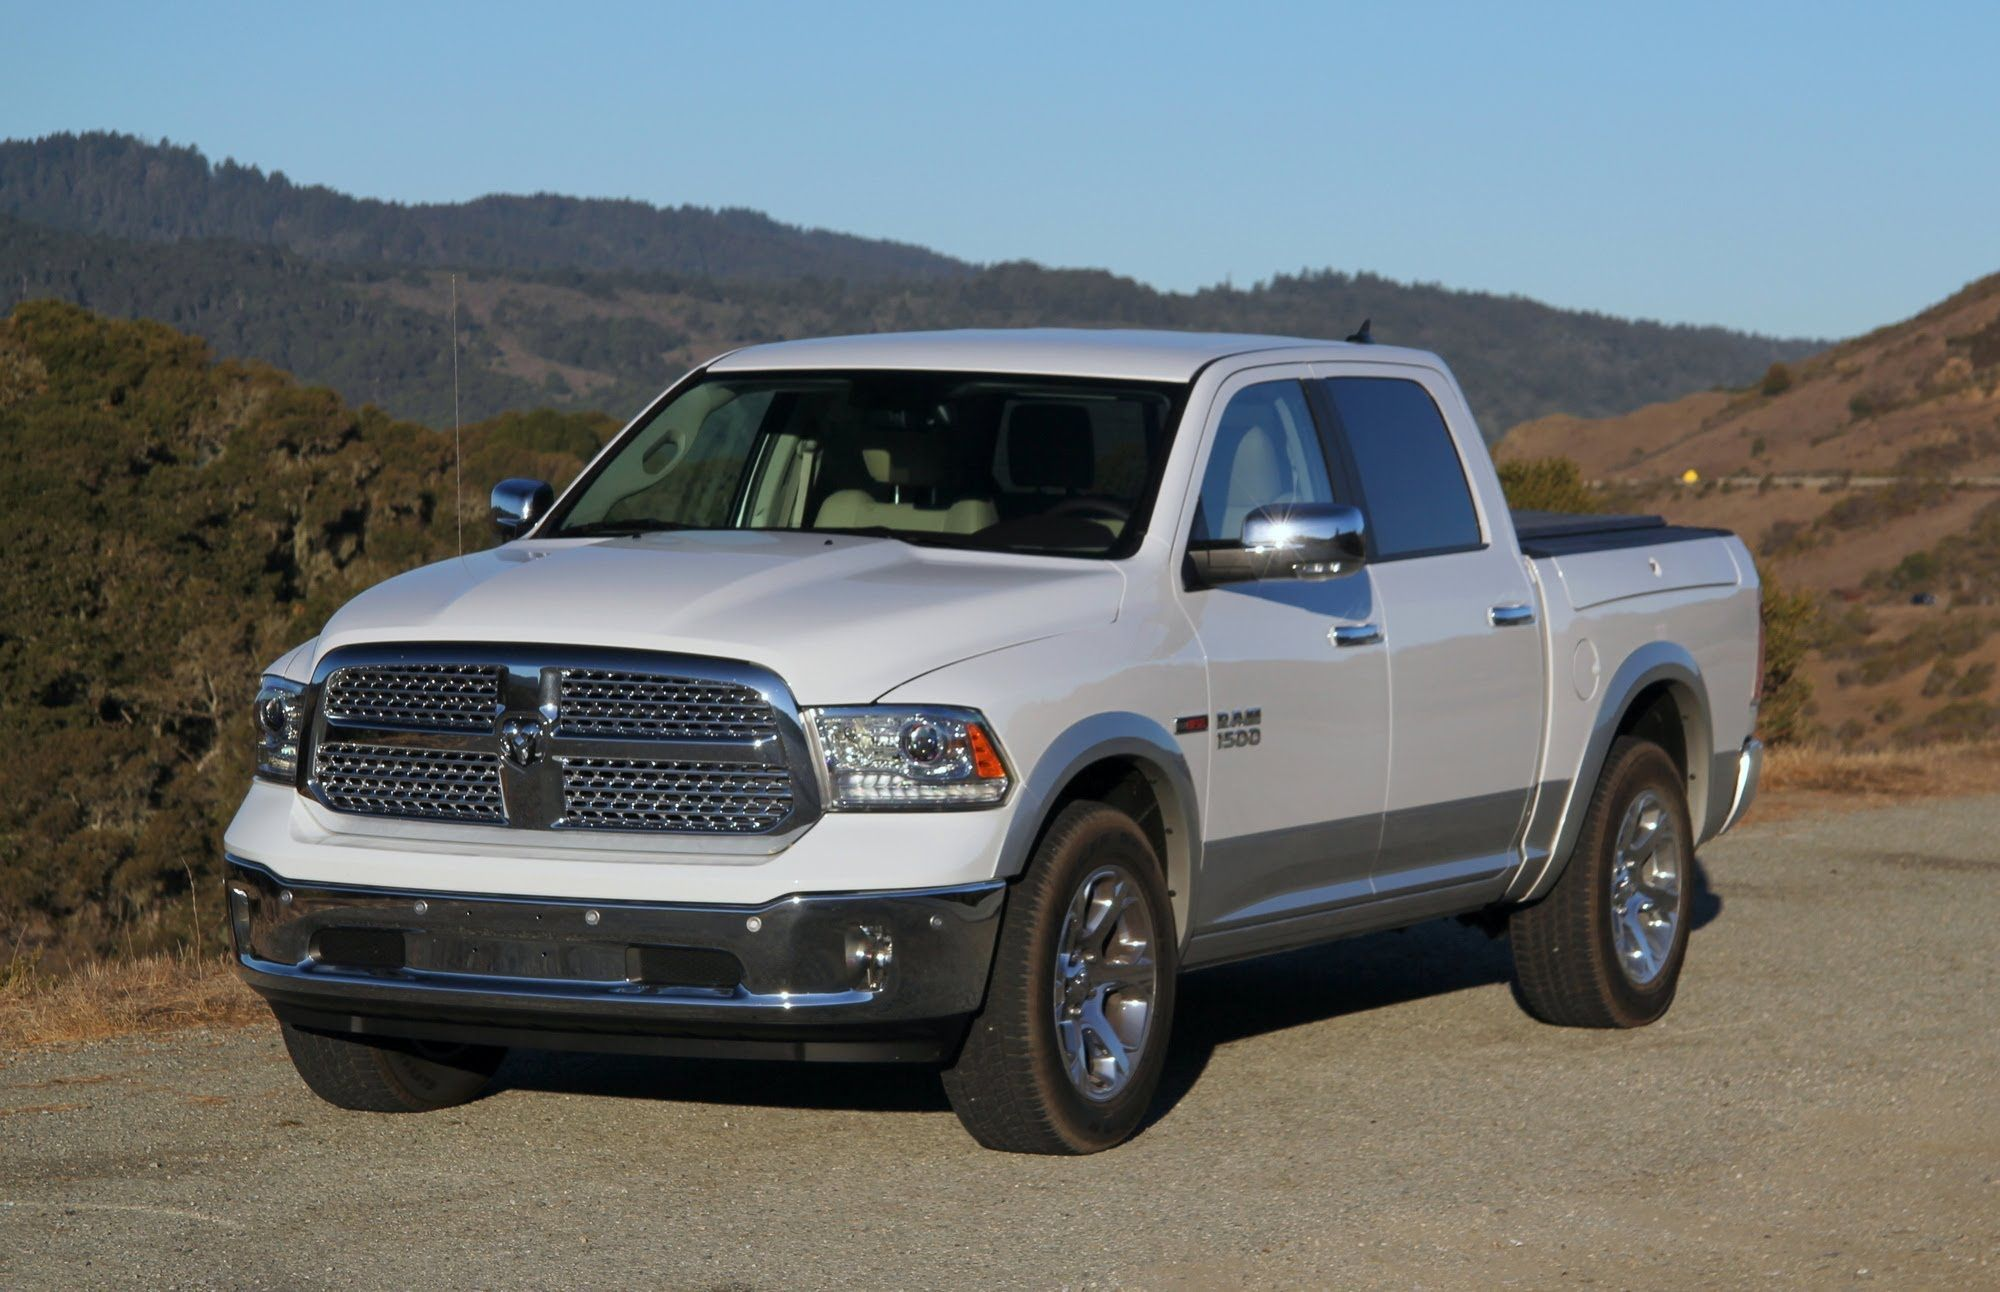 Dodge ram 1500 eco diesel only 1500 with diesel 9 200 tow cap